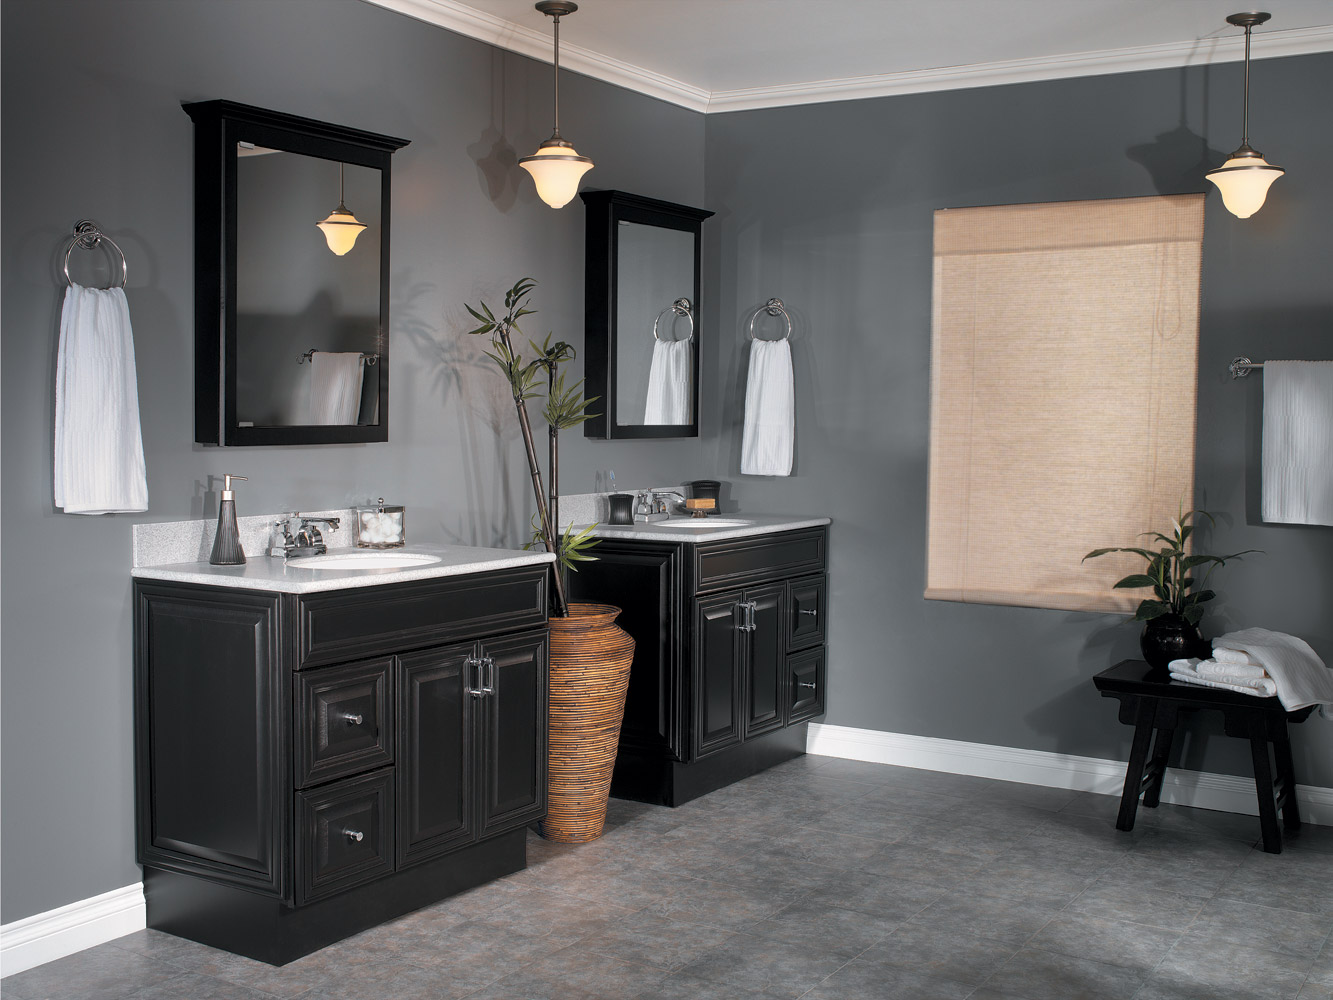 Attirant Fill Traditional Room With Dark Oak Bathroom Vanity Ideas And White Top  Beside Grey Painted Wall